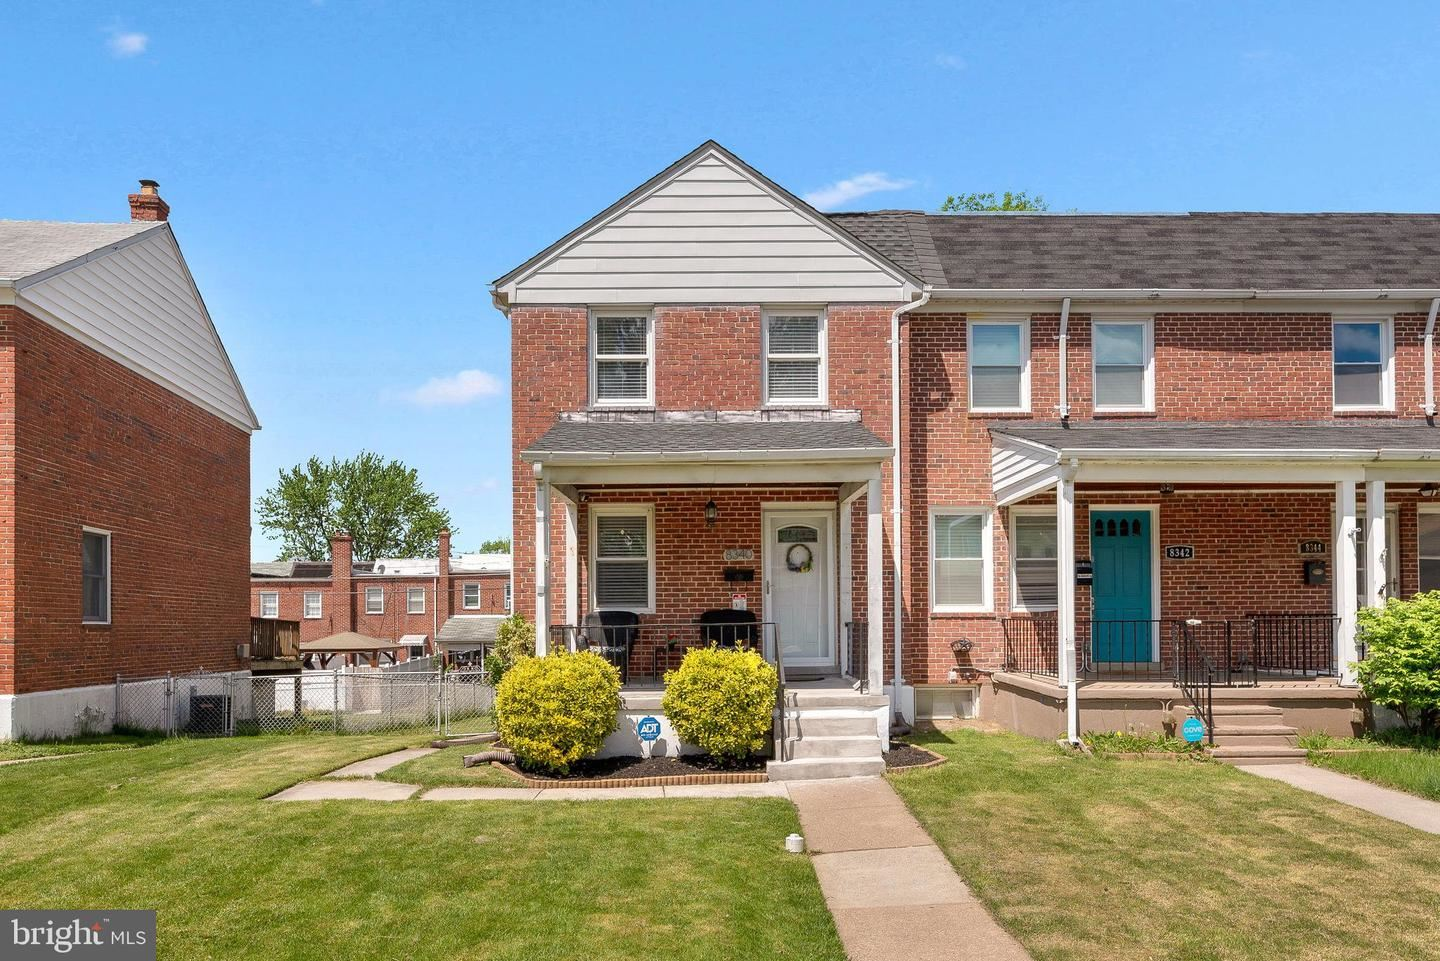 8340 RIDGELY OAK RD, Baltimore, MD 21234 - MLS#: MDBC527838